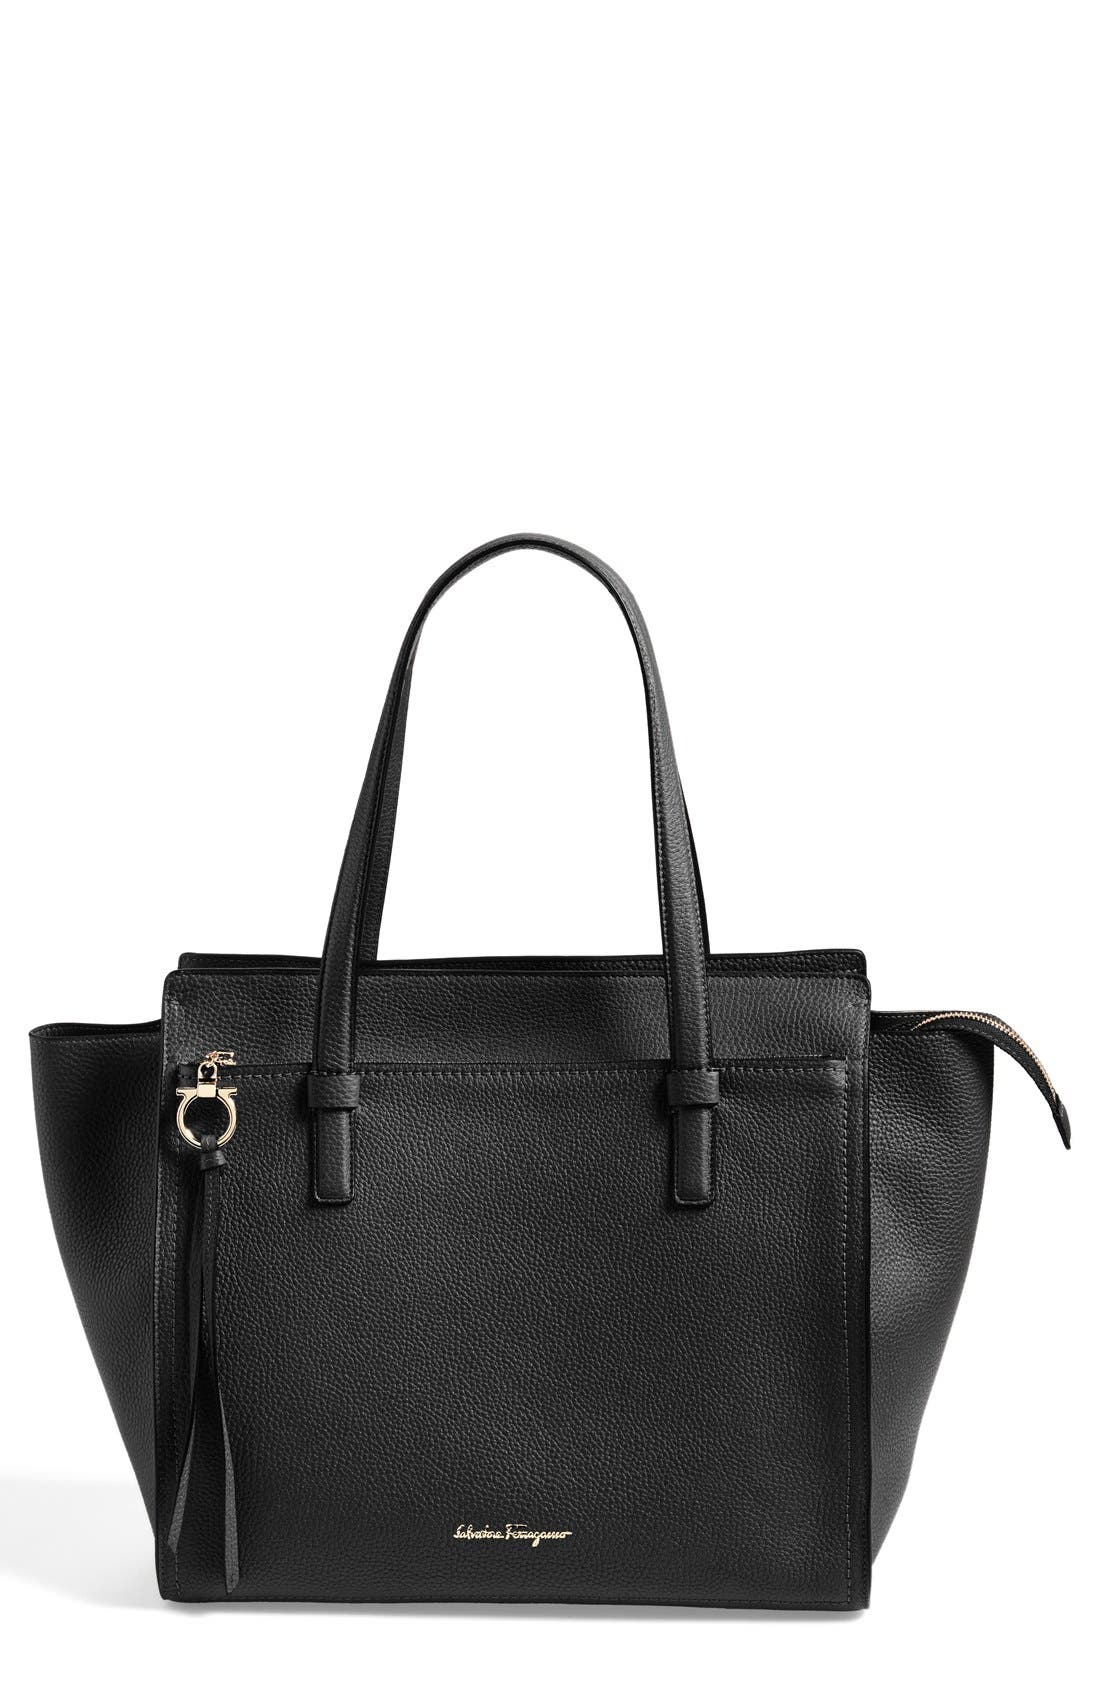 SALVATORE FERRAGAMO 'Fill Up - Large' Leather Tote